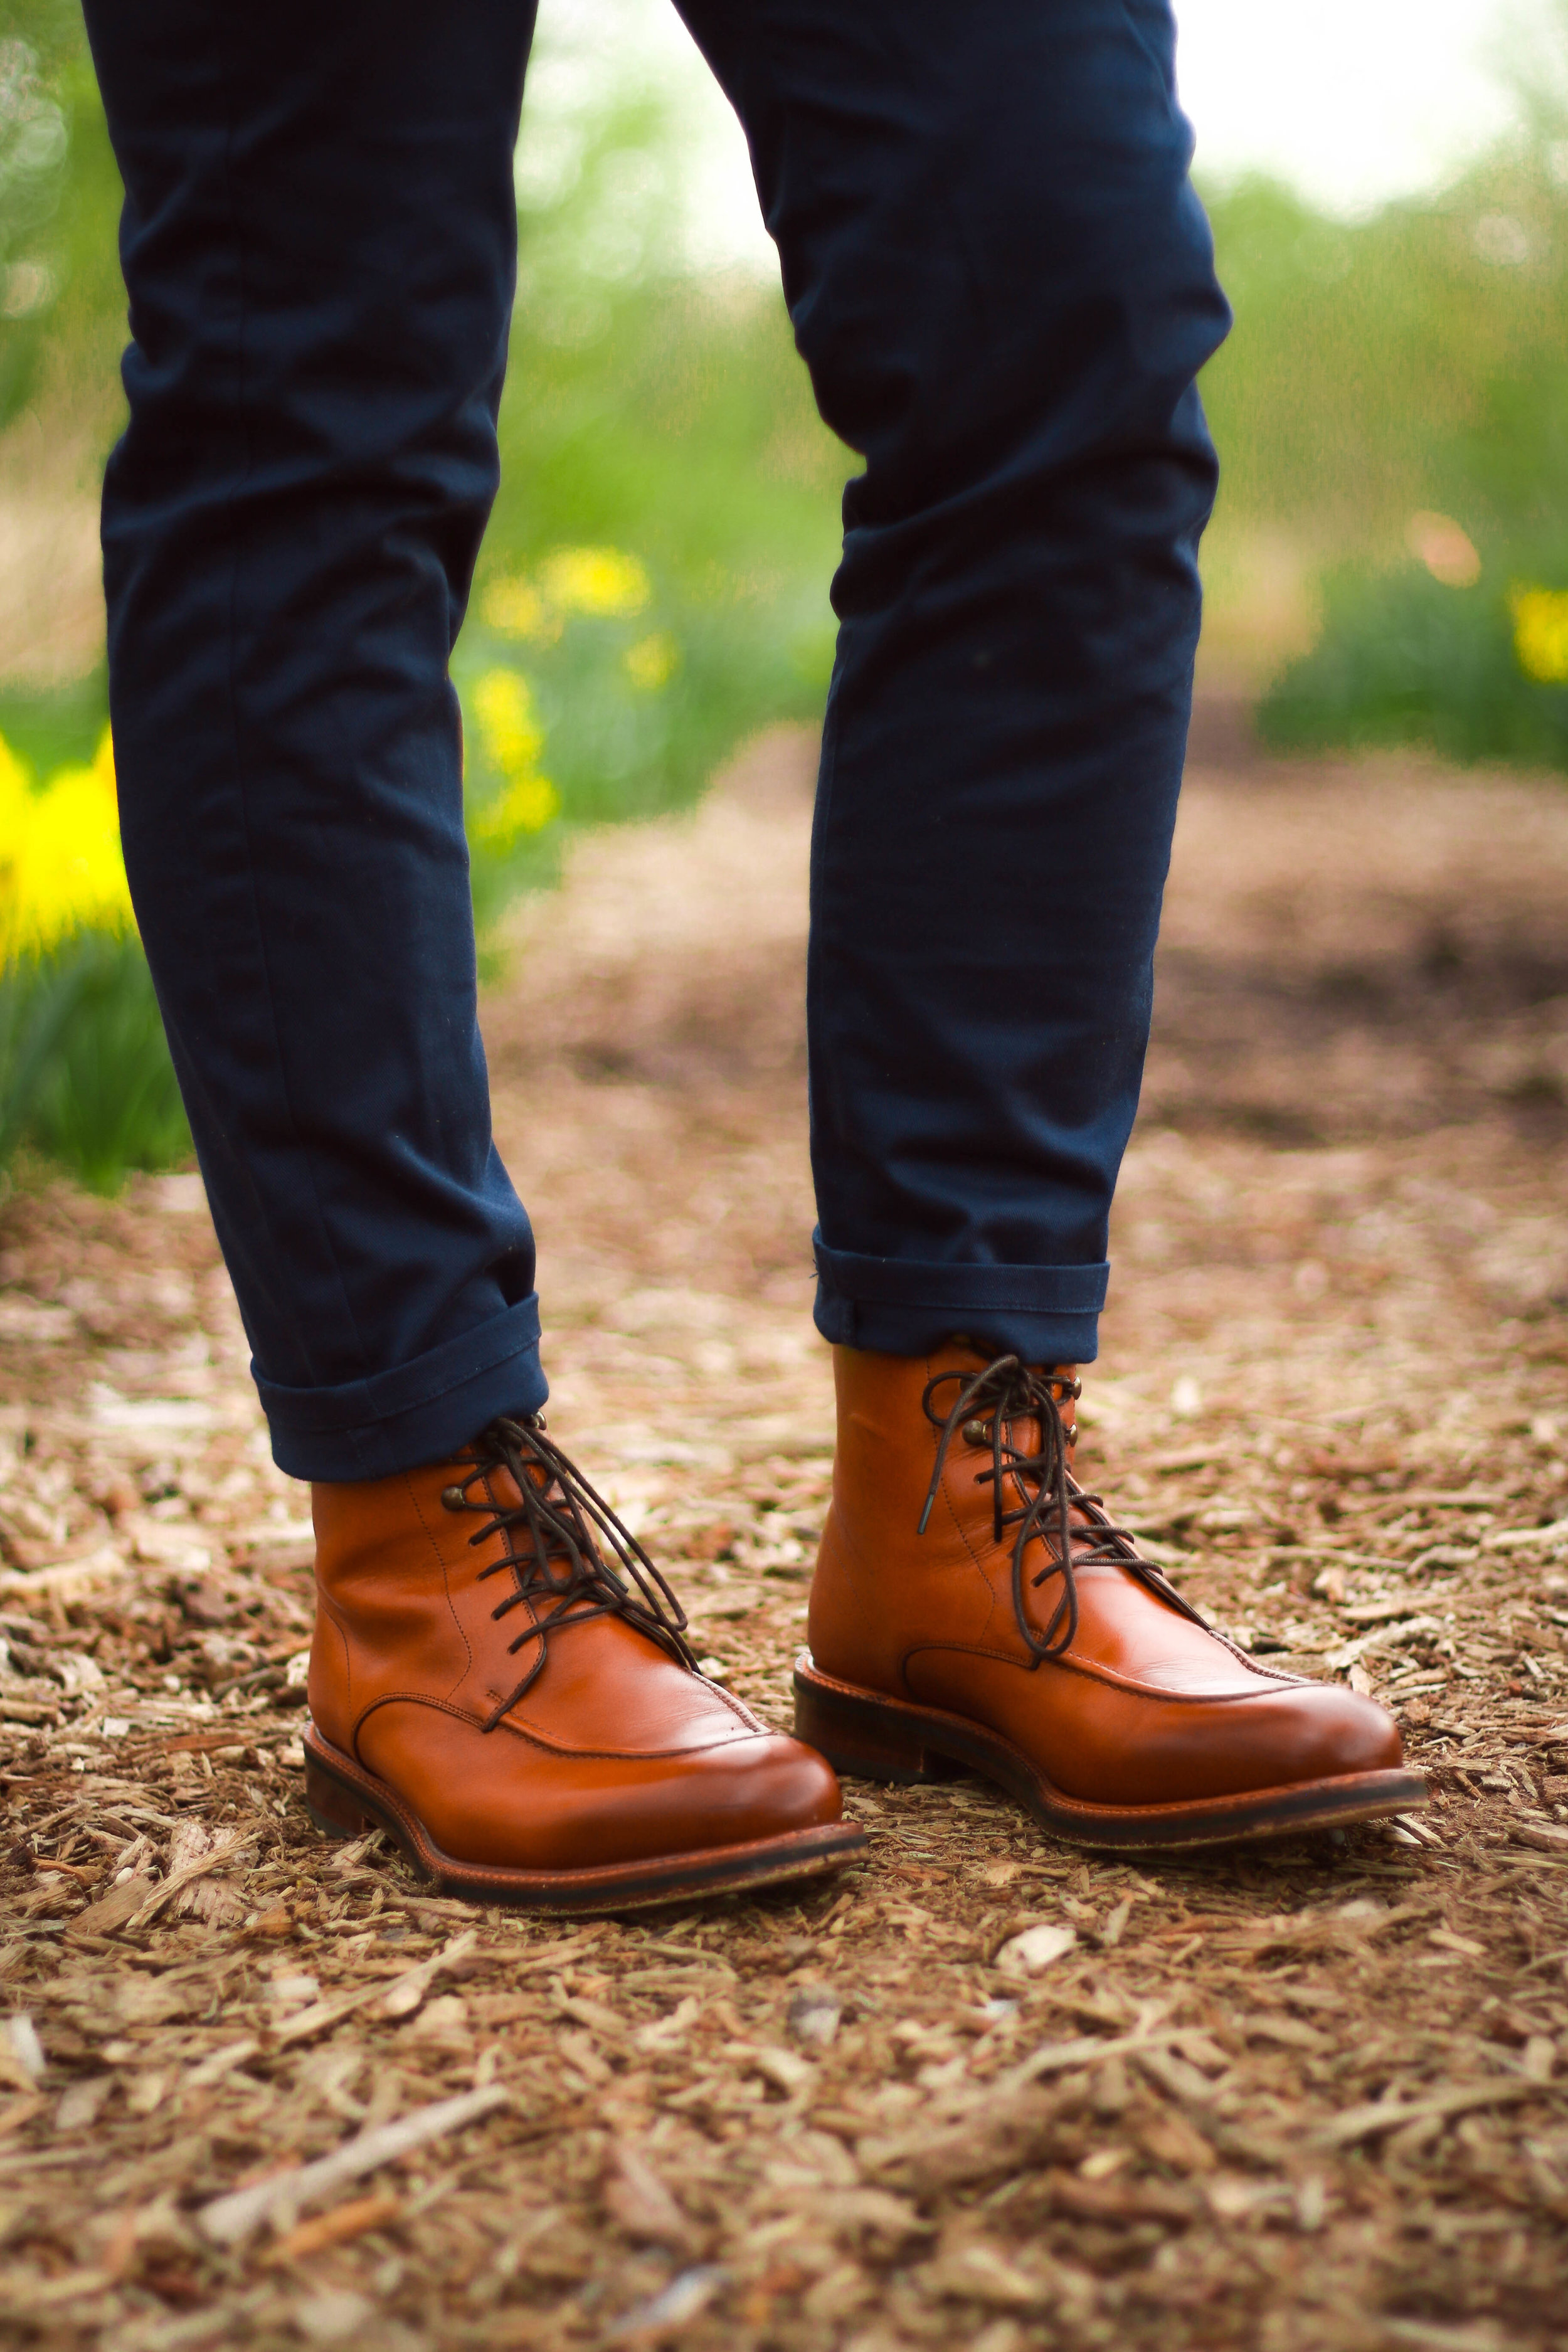 Everyone loves a good moc toe! A balanced design like this one makes it incredibly versatile.